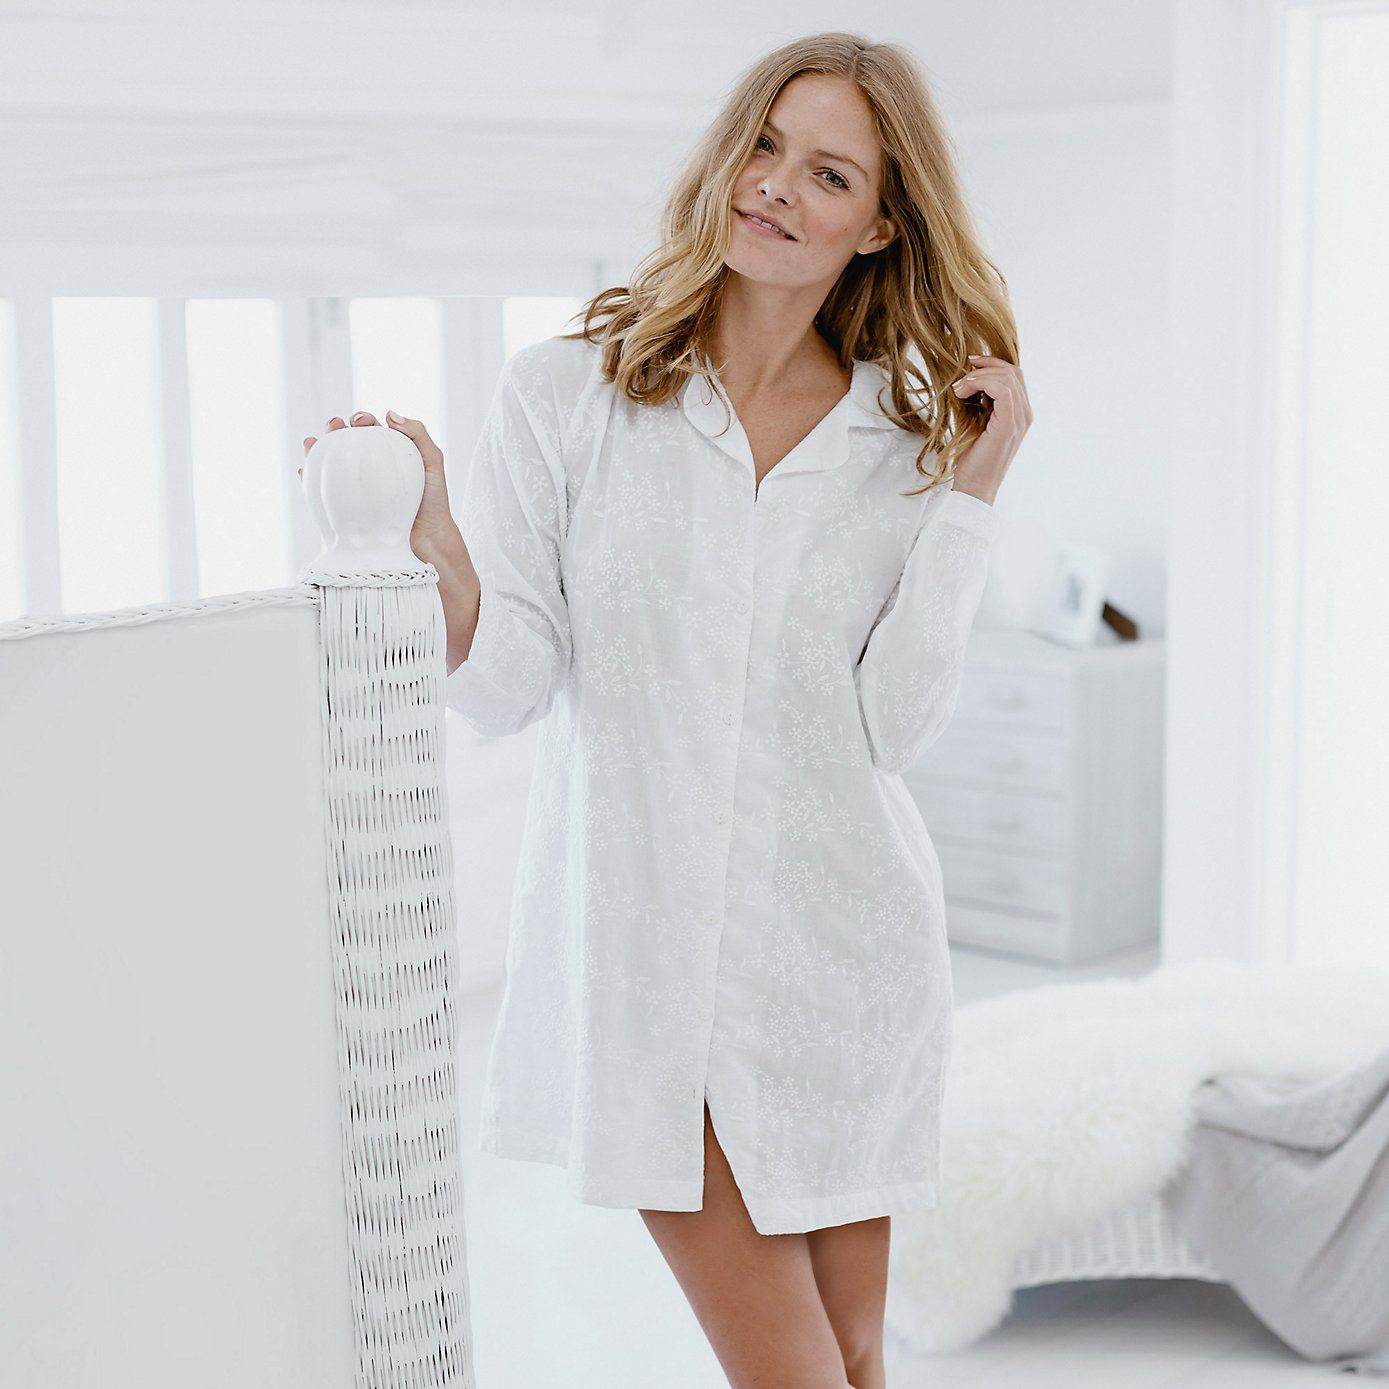 Embroidered Nightshirt - White  49ebaadfc